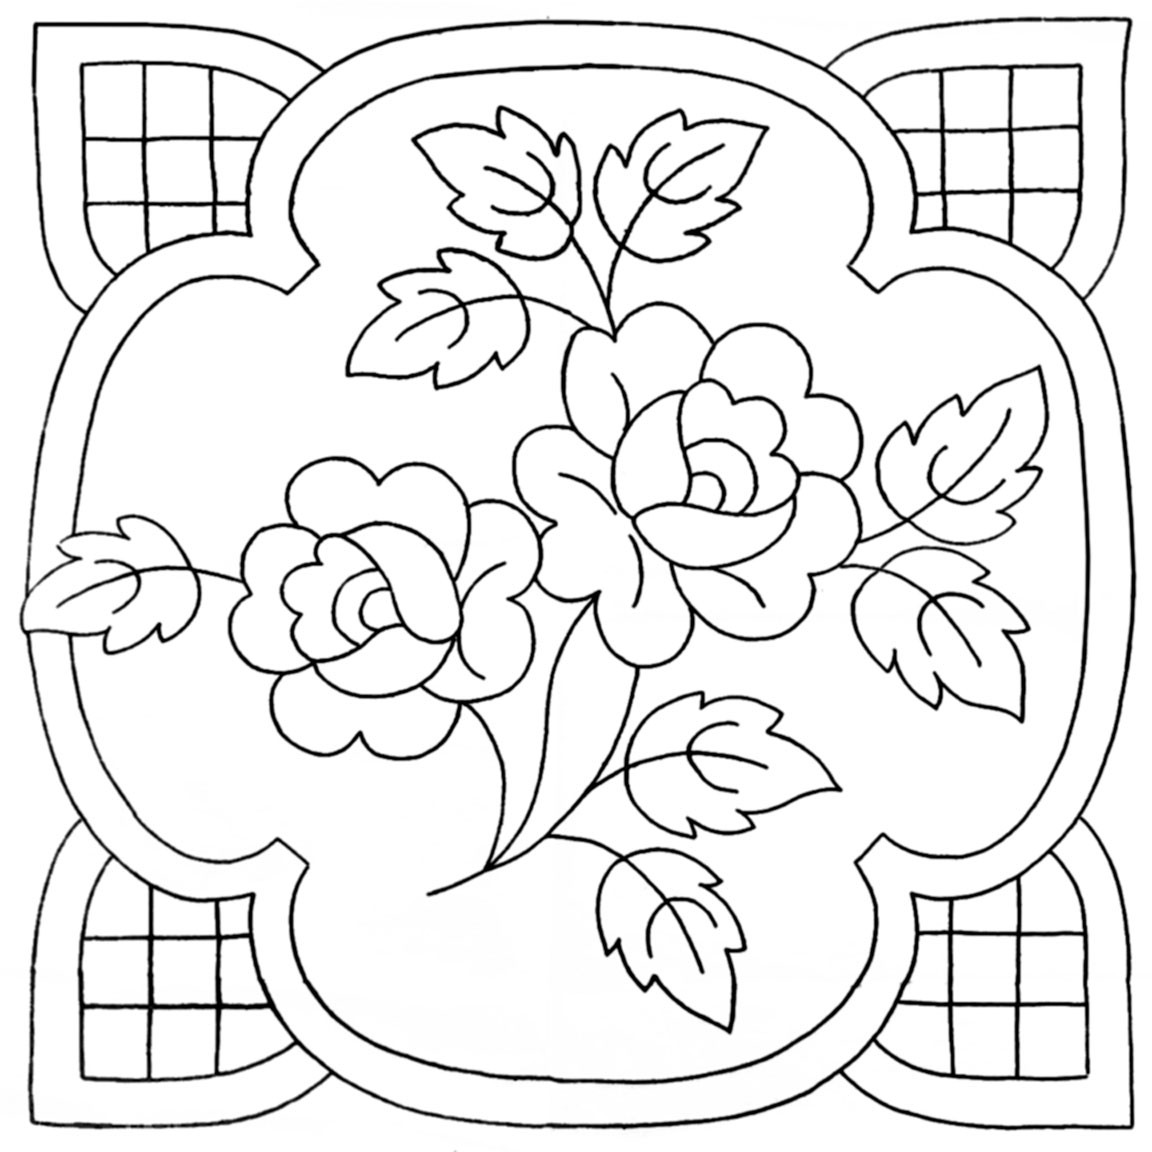 Hand Embroidery Patterns Elegant Hand Quilting Designs From Vintage Embroidery Transfers Of Adorable 44 Pictures Hand Embroidery Patterns